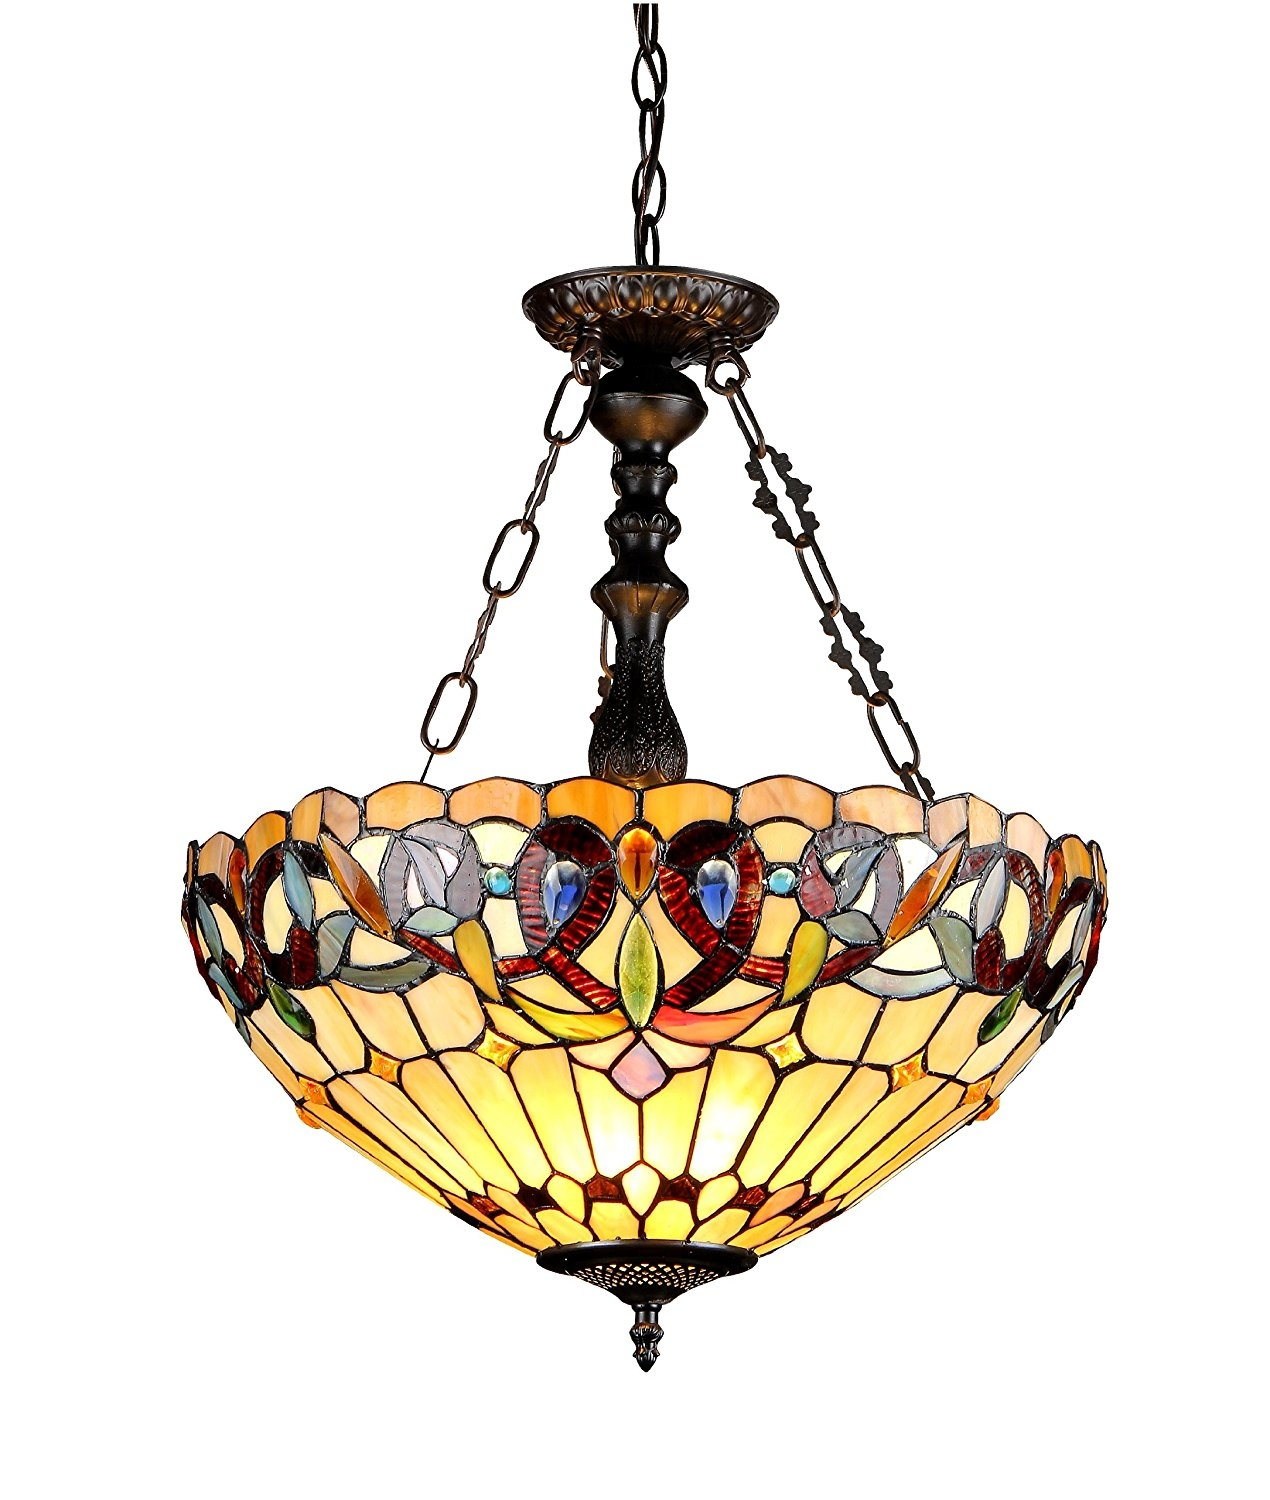 Chloe Lighting Ch33353vr18 Uh3 Serenity Tiffany Style Victorian 3 With Inverted Pendant Chandeliers (Image 8 of 25)